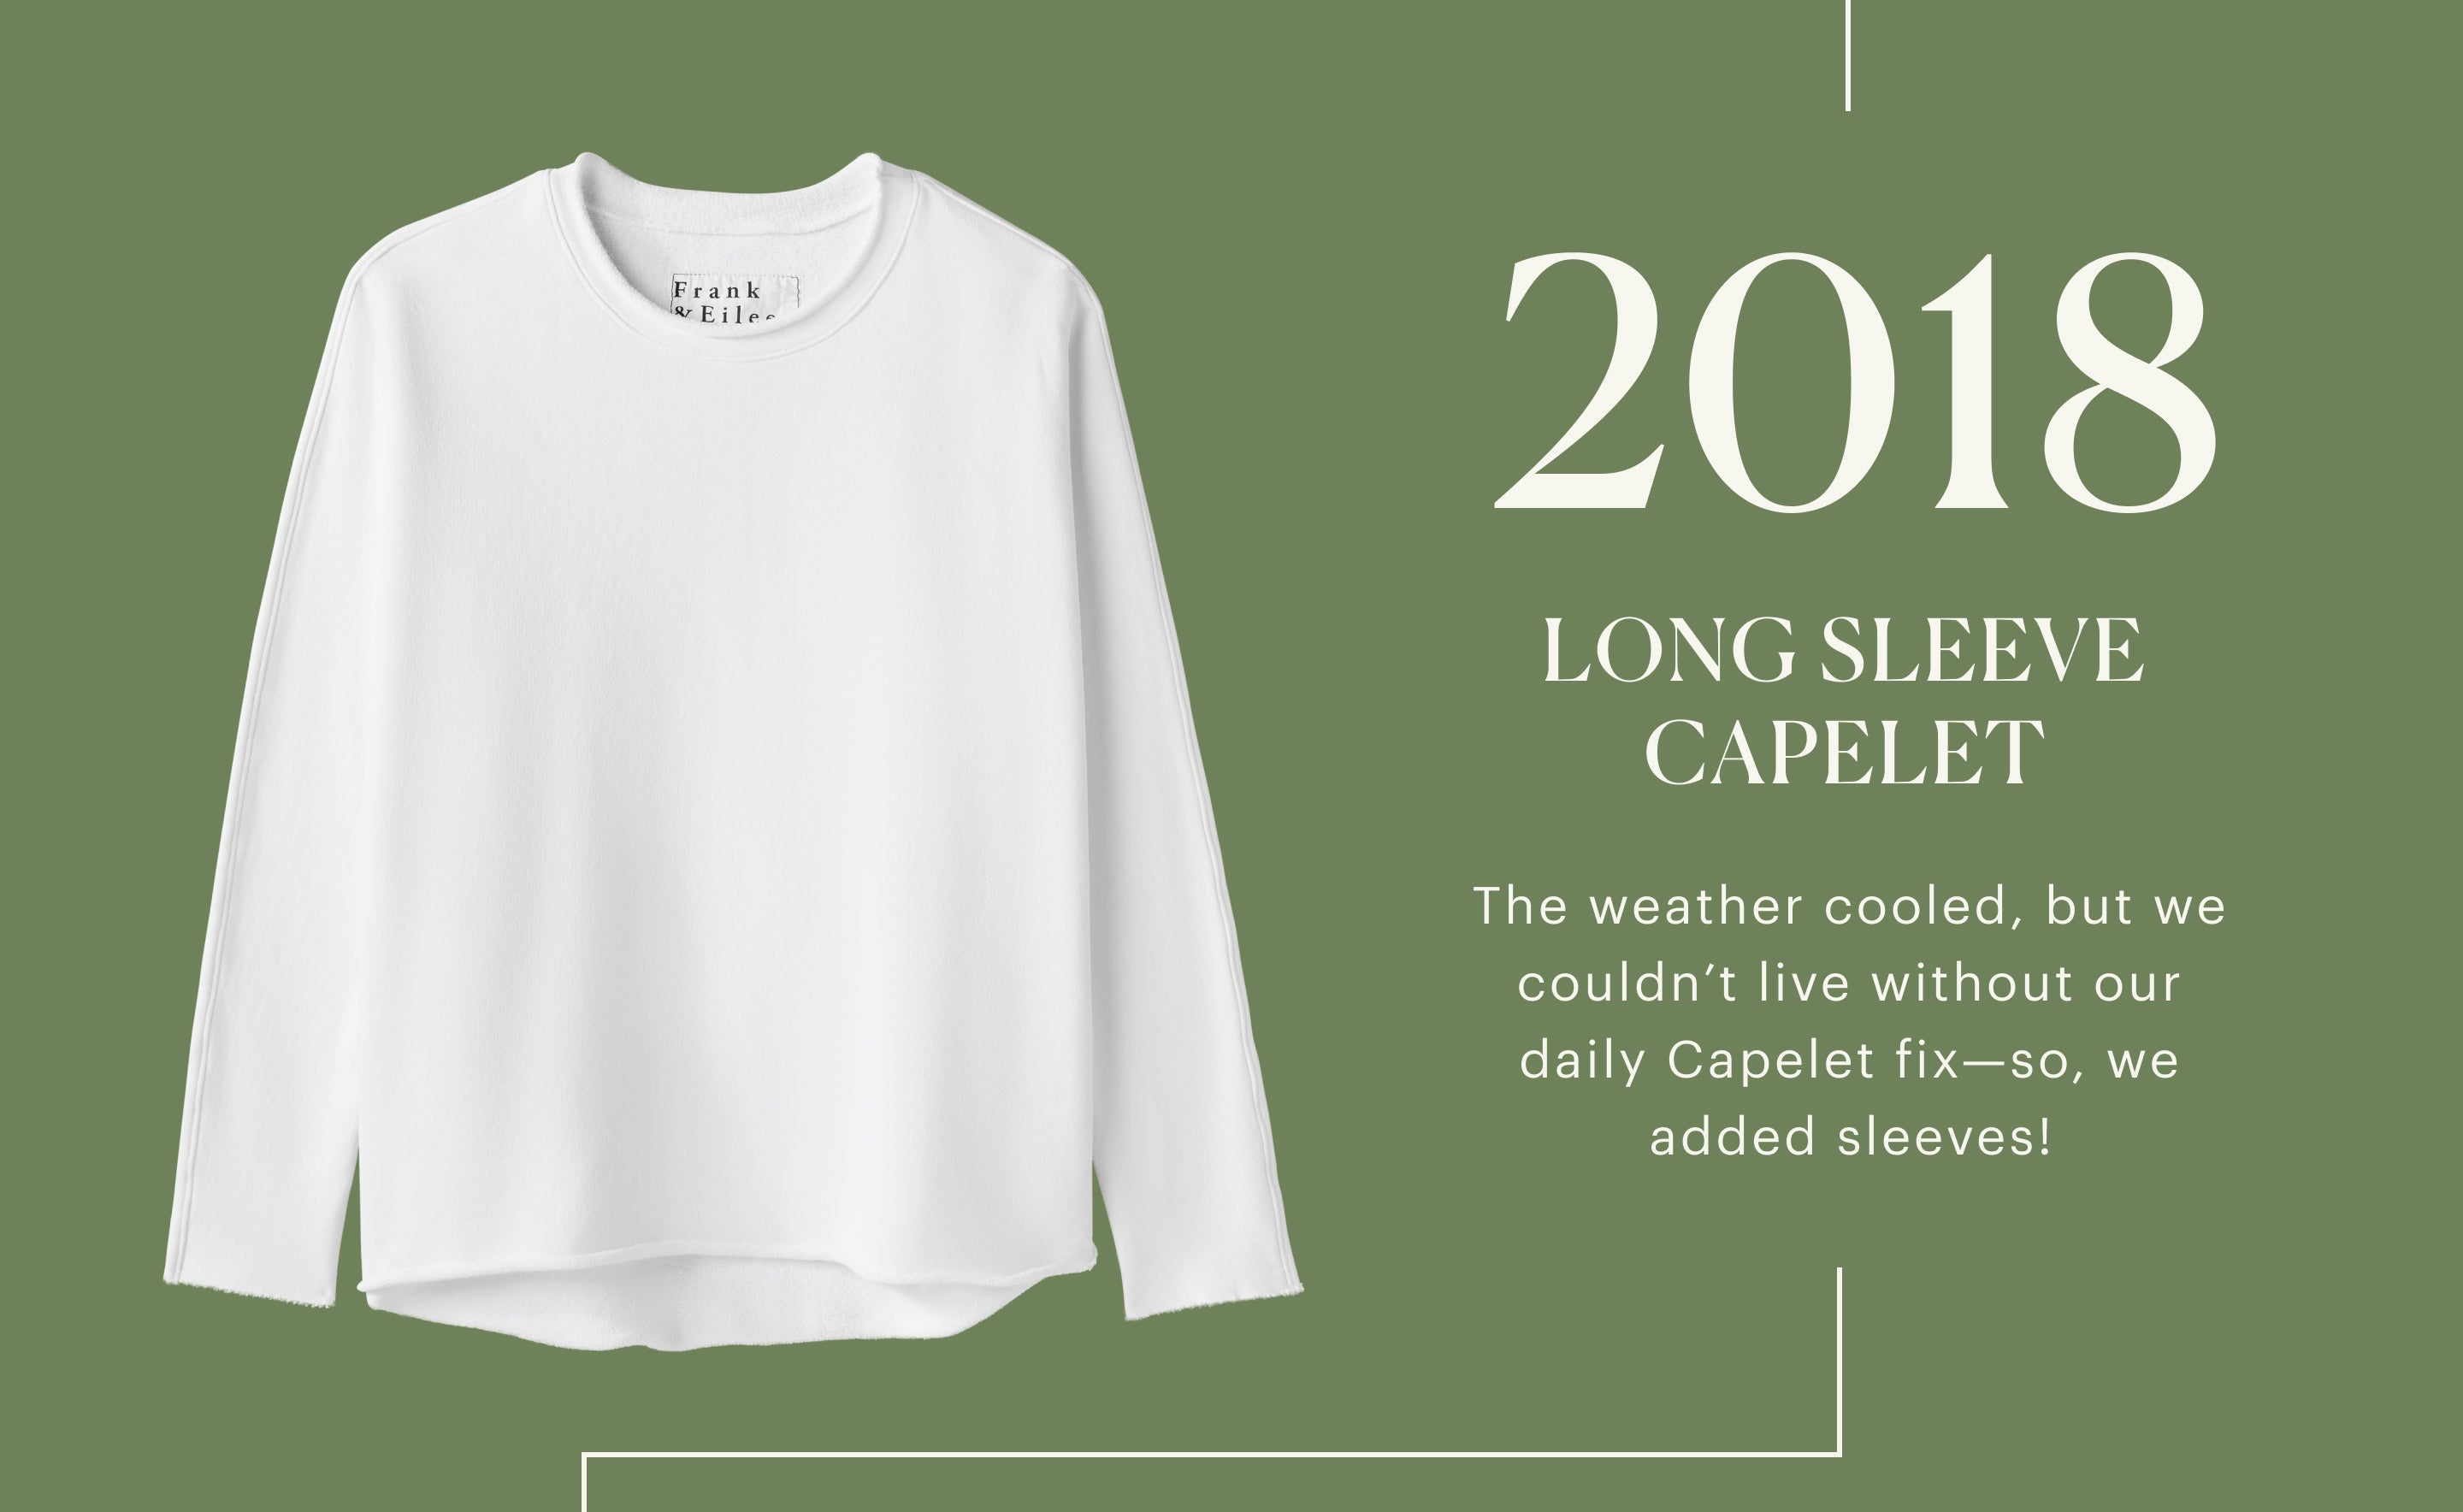 2018 Long Sleeve Capelet. The weather cooled, but we couldn't live without our daily Caplet fix-so, we added sleeves!